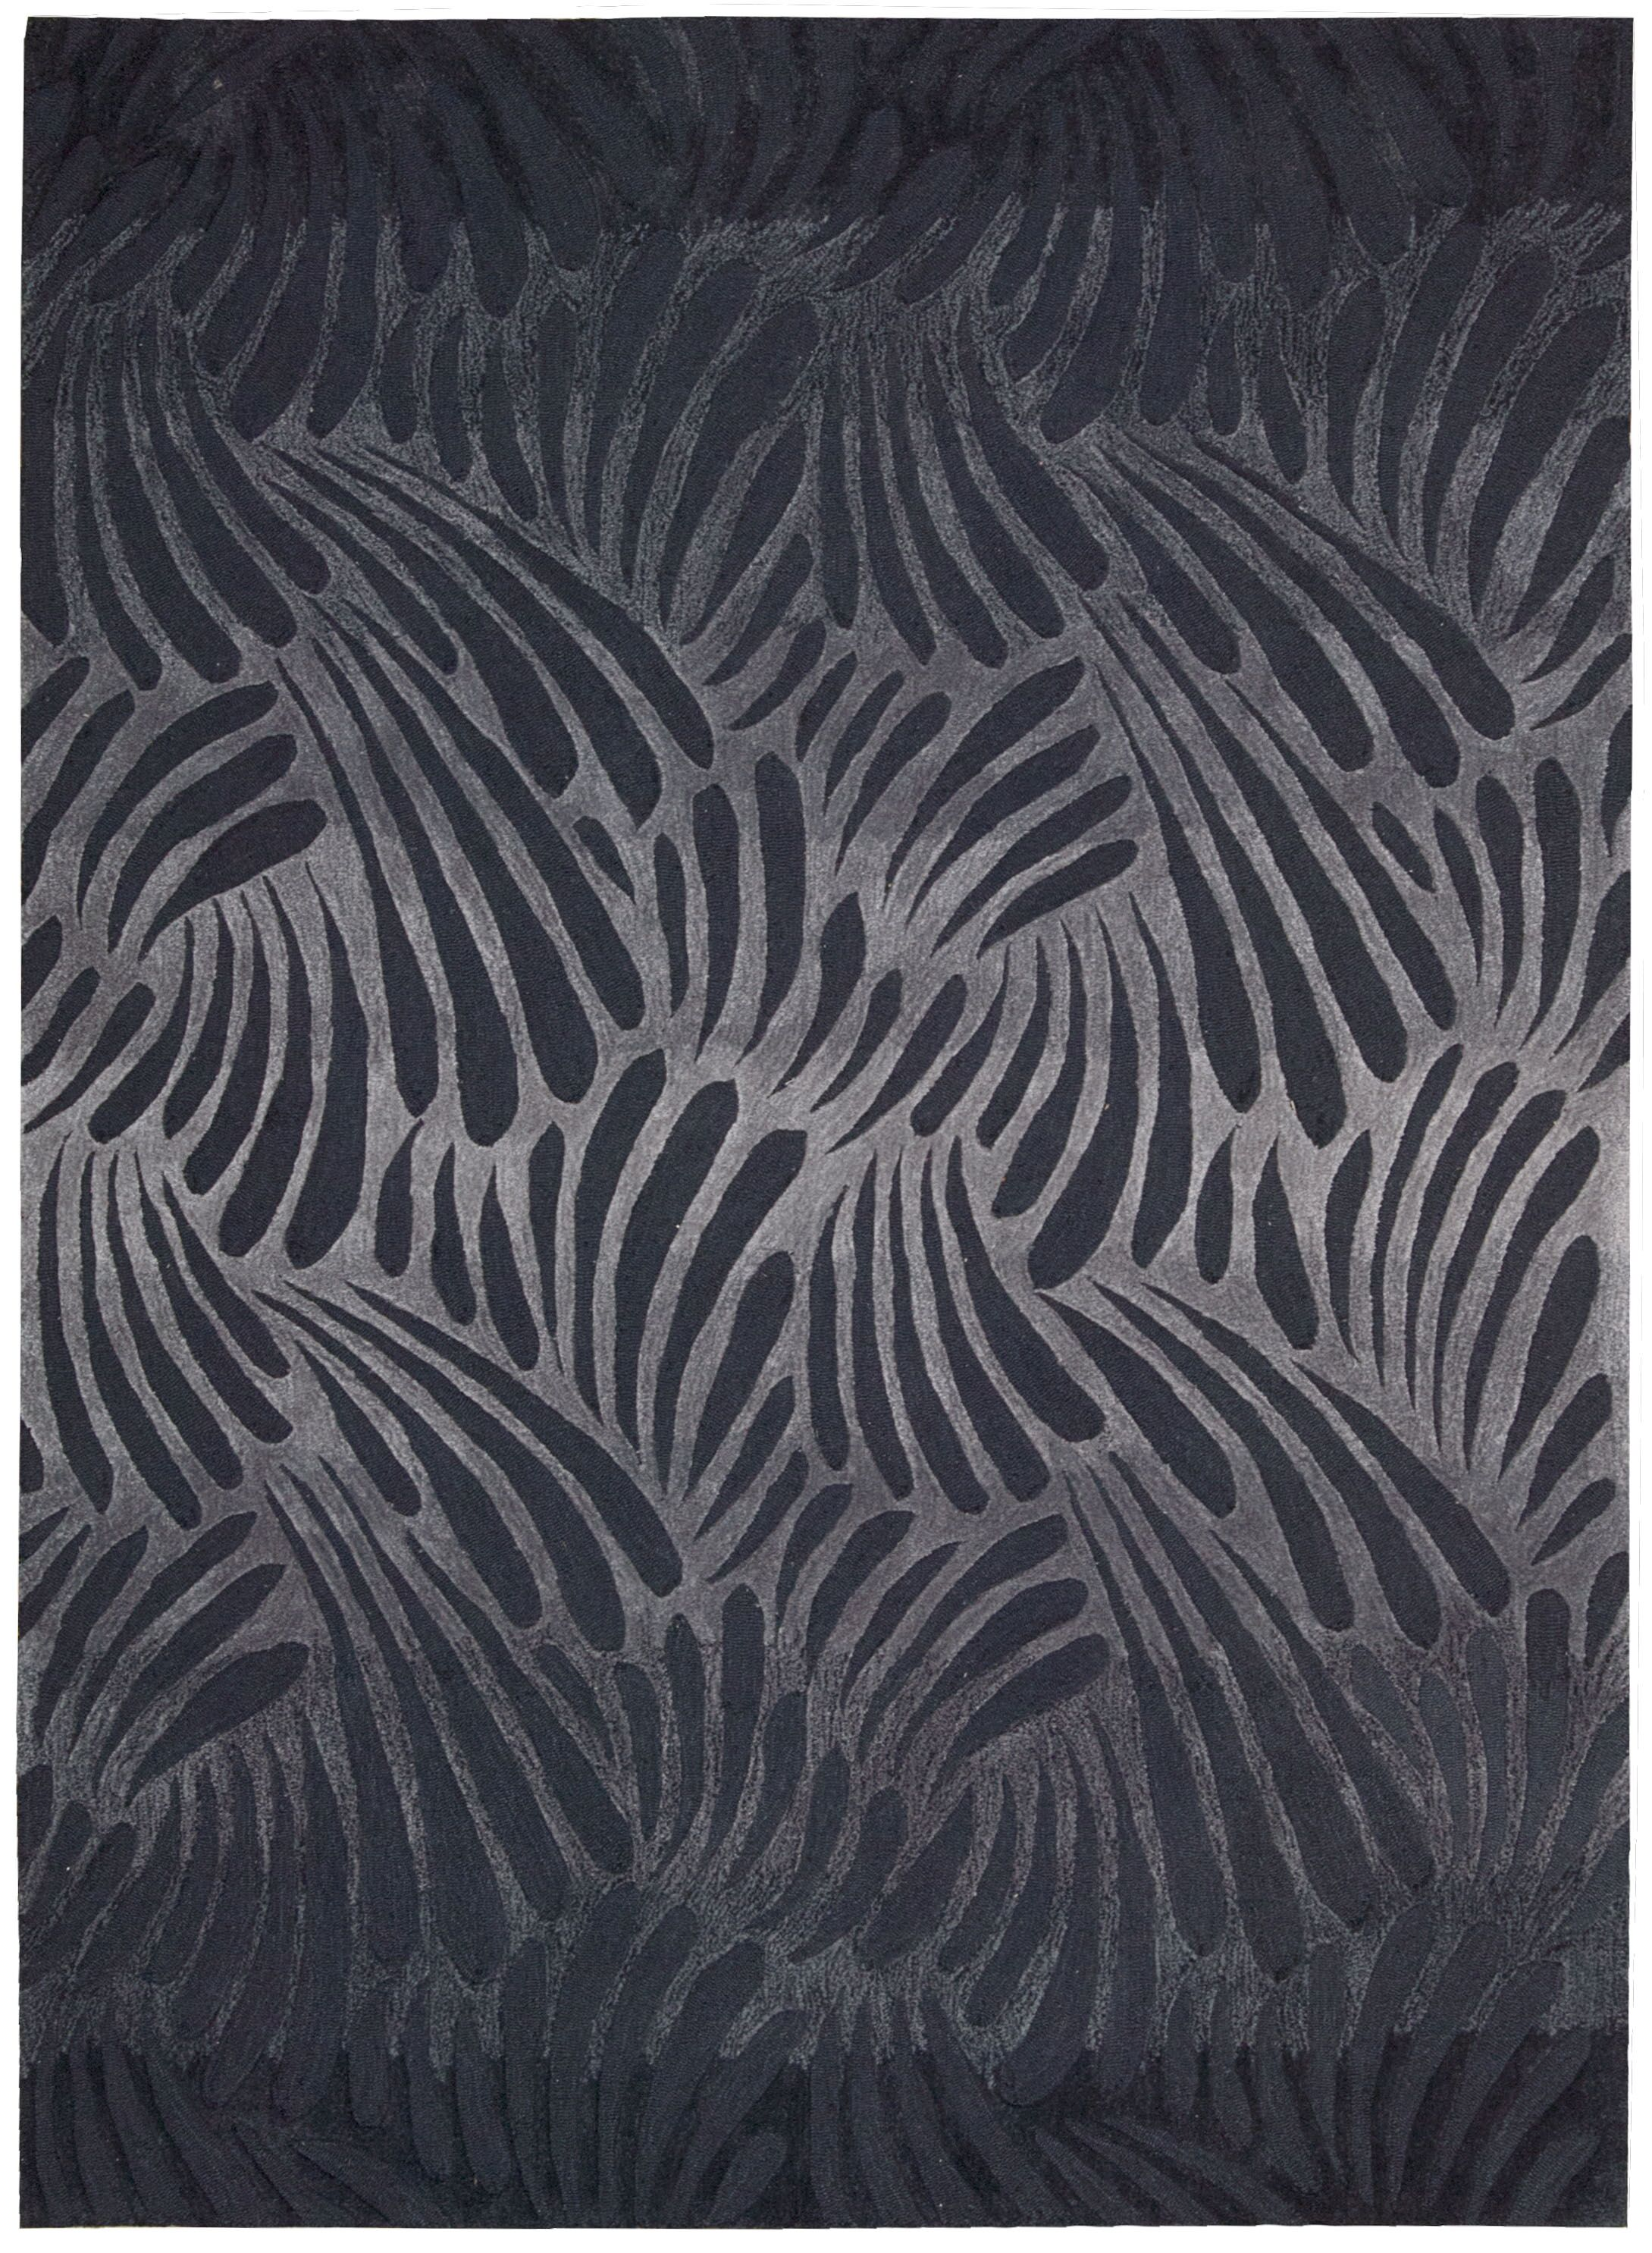 Irina Hand-Tufted Charcoal Area Rug Rug Size: Rectangle 5' x 7'6